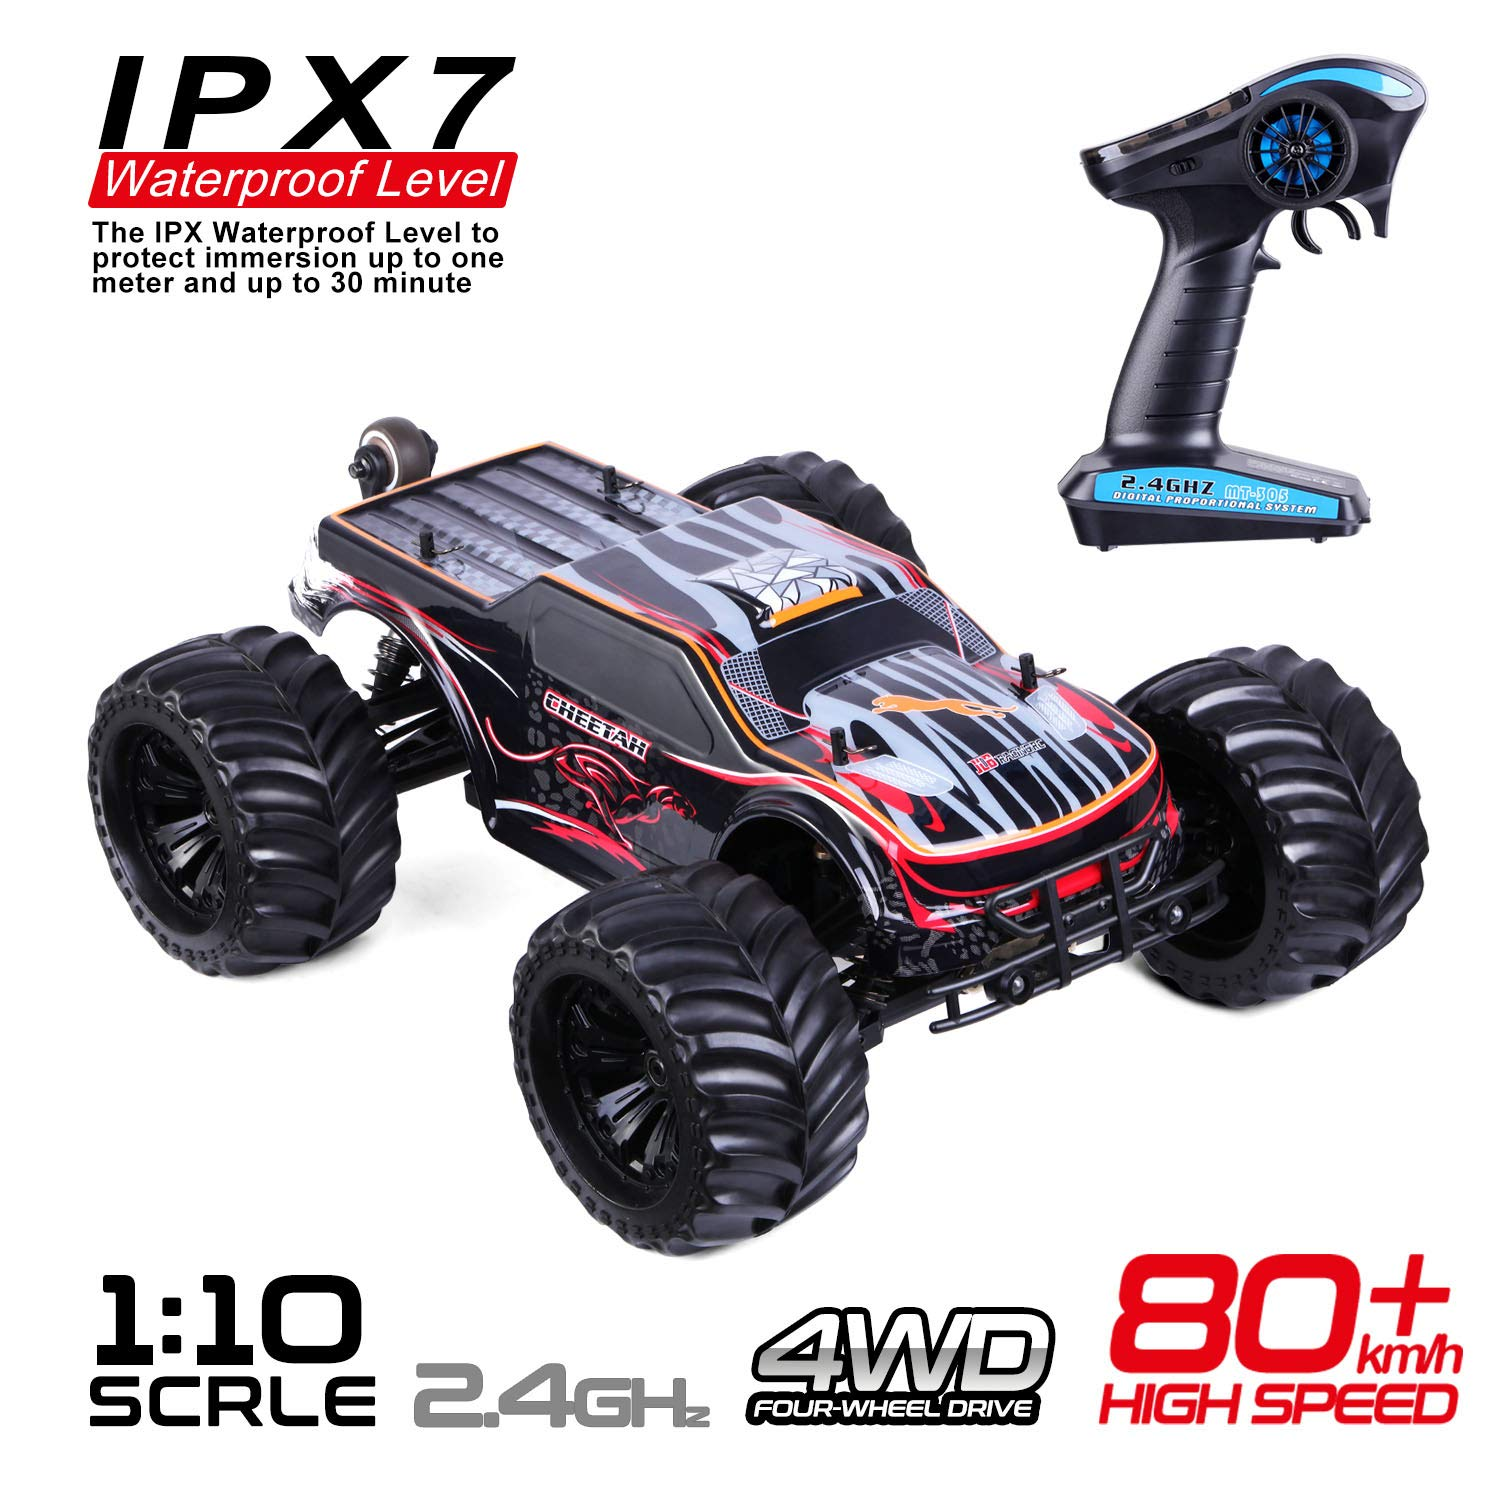 1:10 Scale Remote Control Car Truck, 80+ KM/H High Speed RTR RC Truck